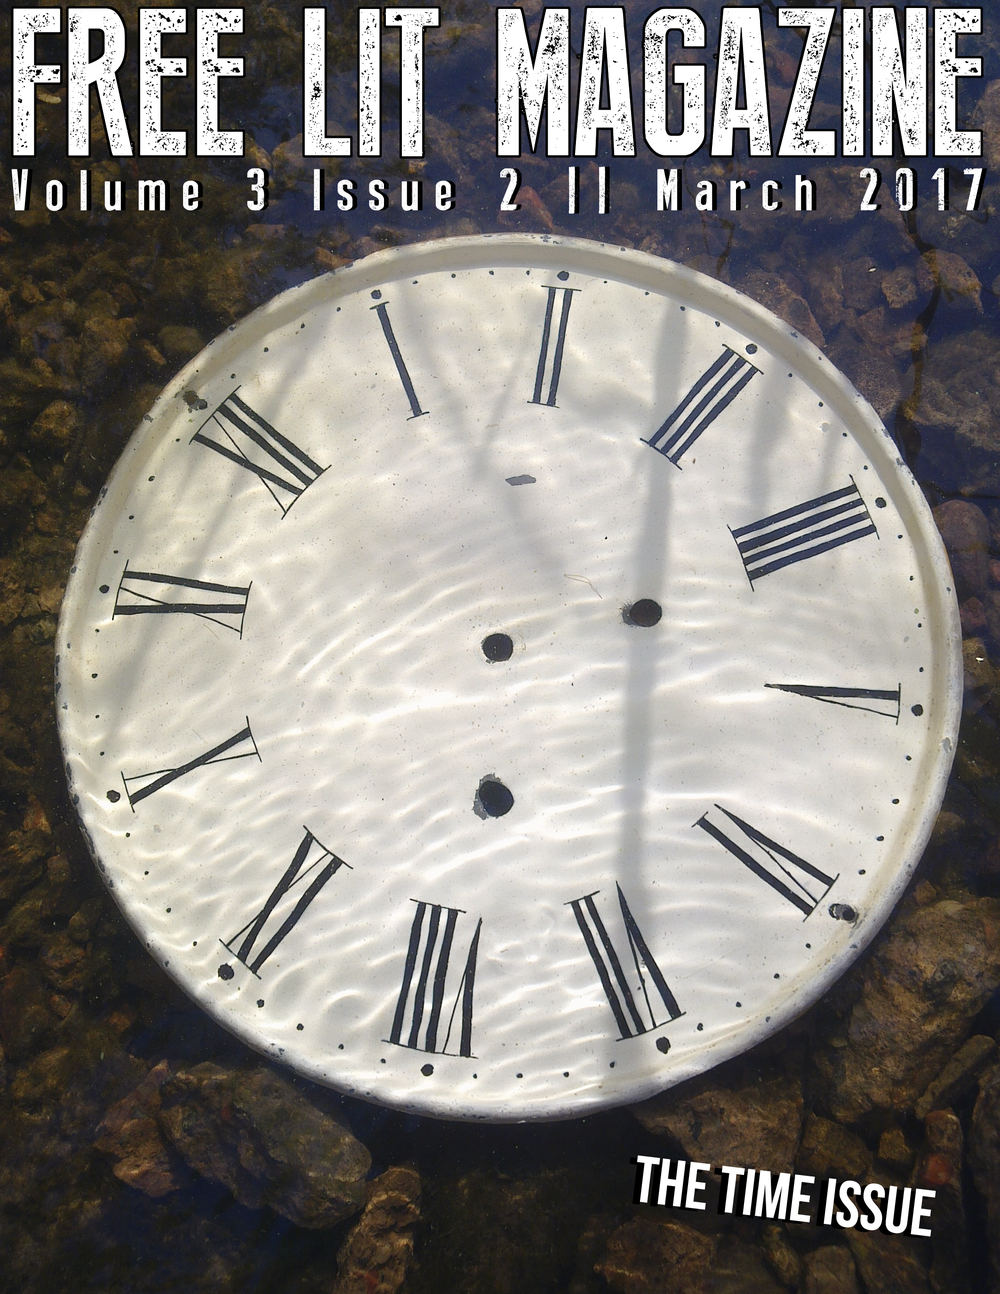 volume 3 issue 2 (art by 1 sigfridsson)